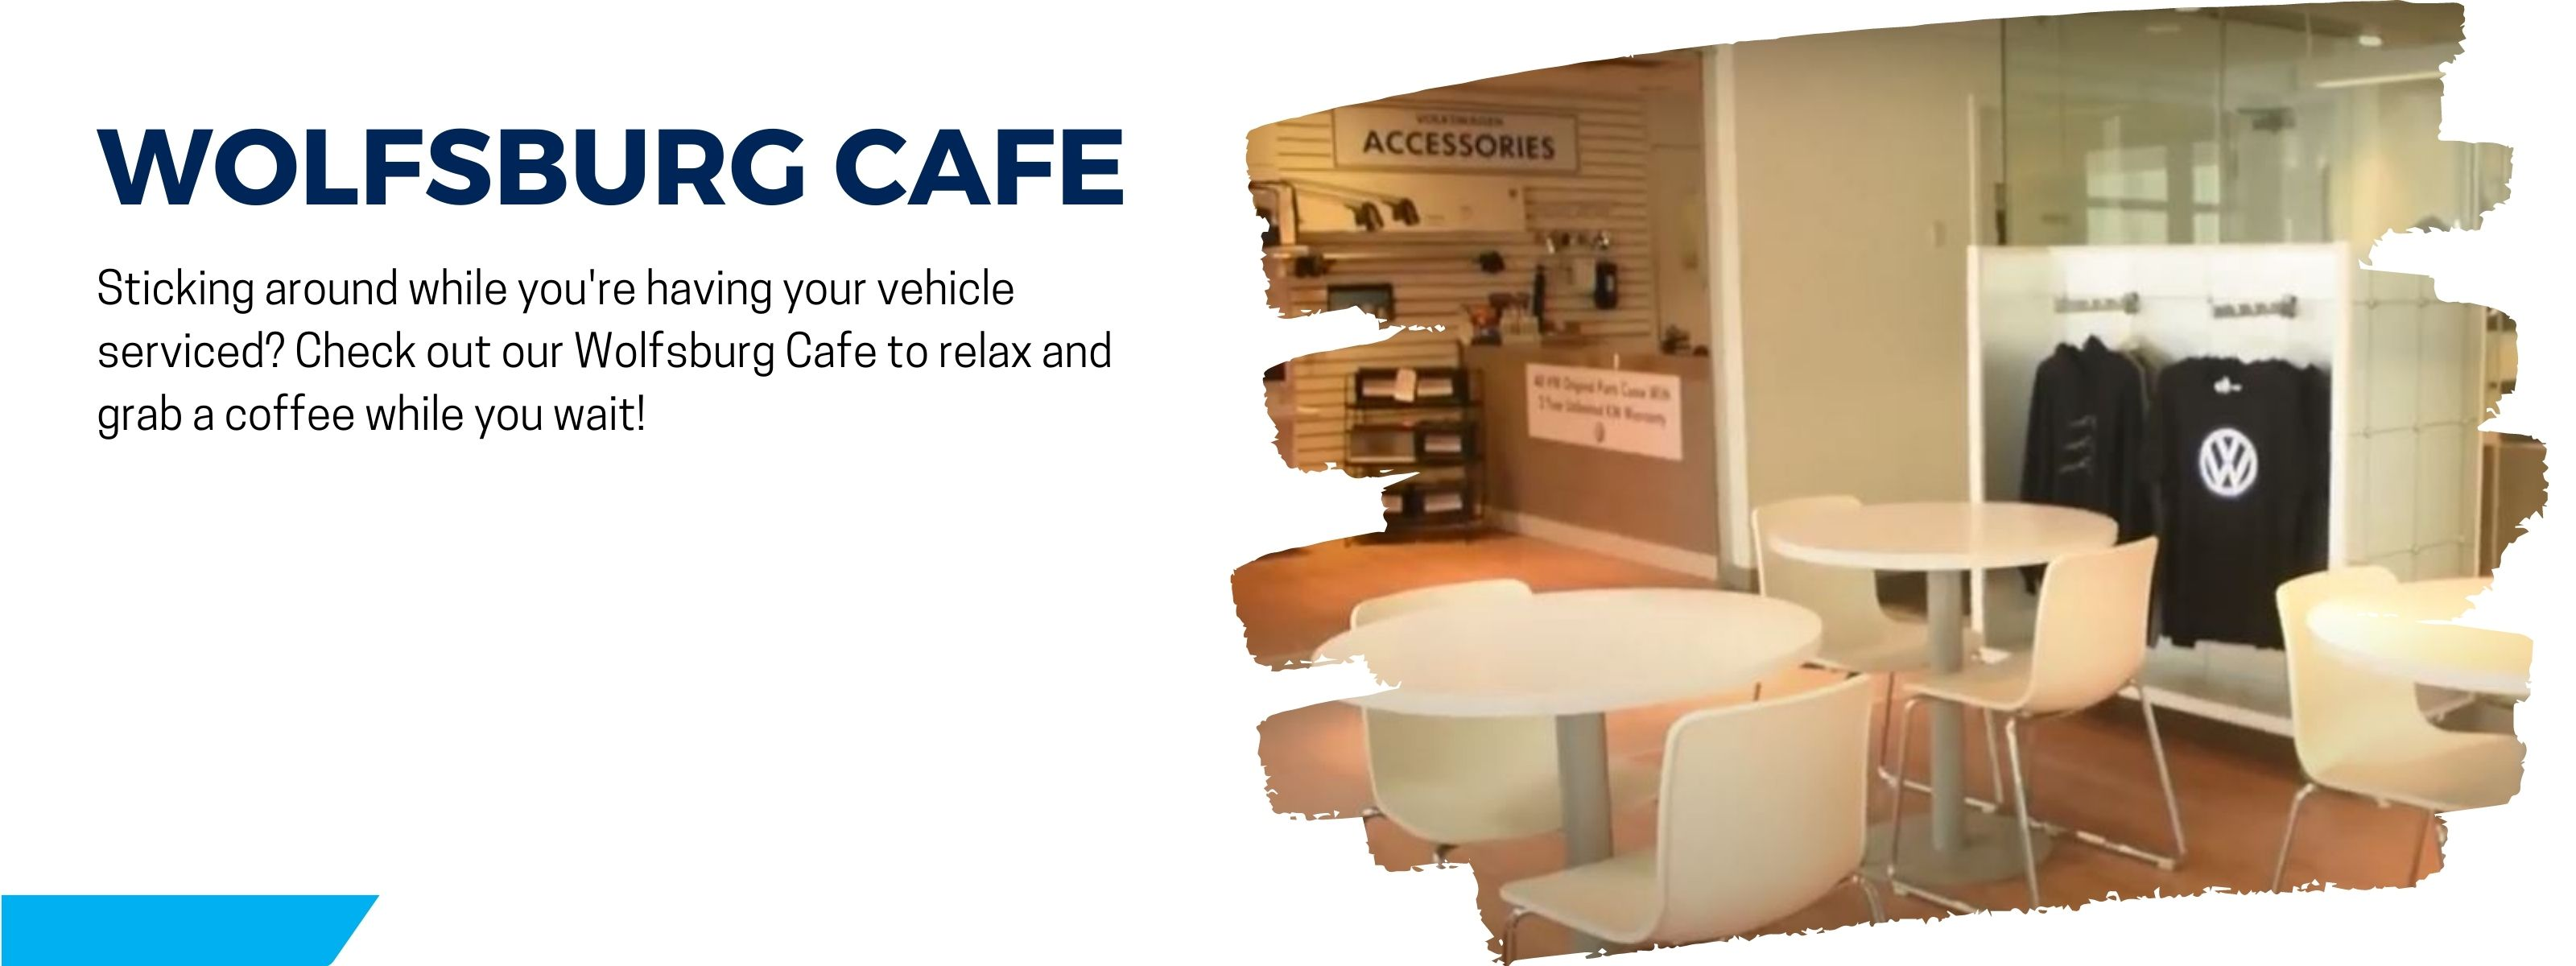 relax in our wolfsburg cafe while getting your vehicle serviced